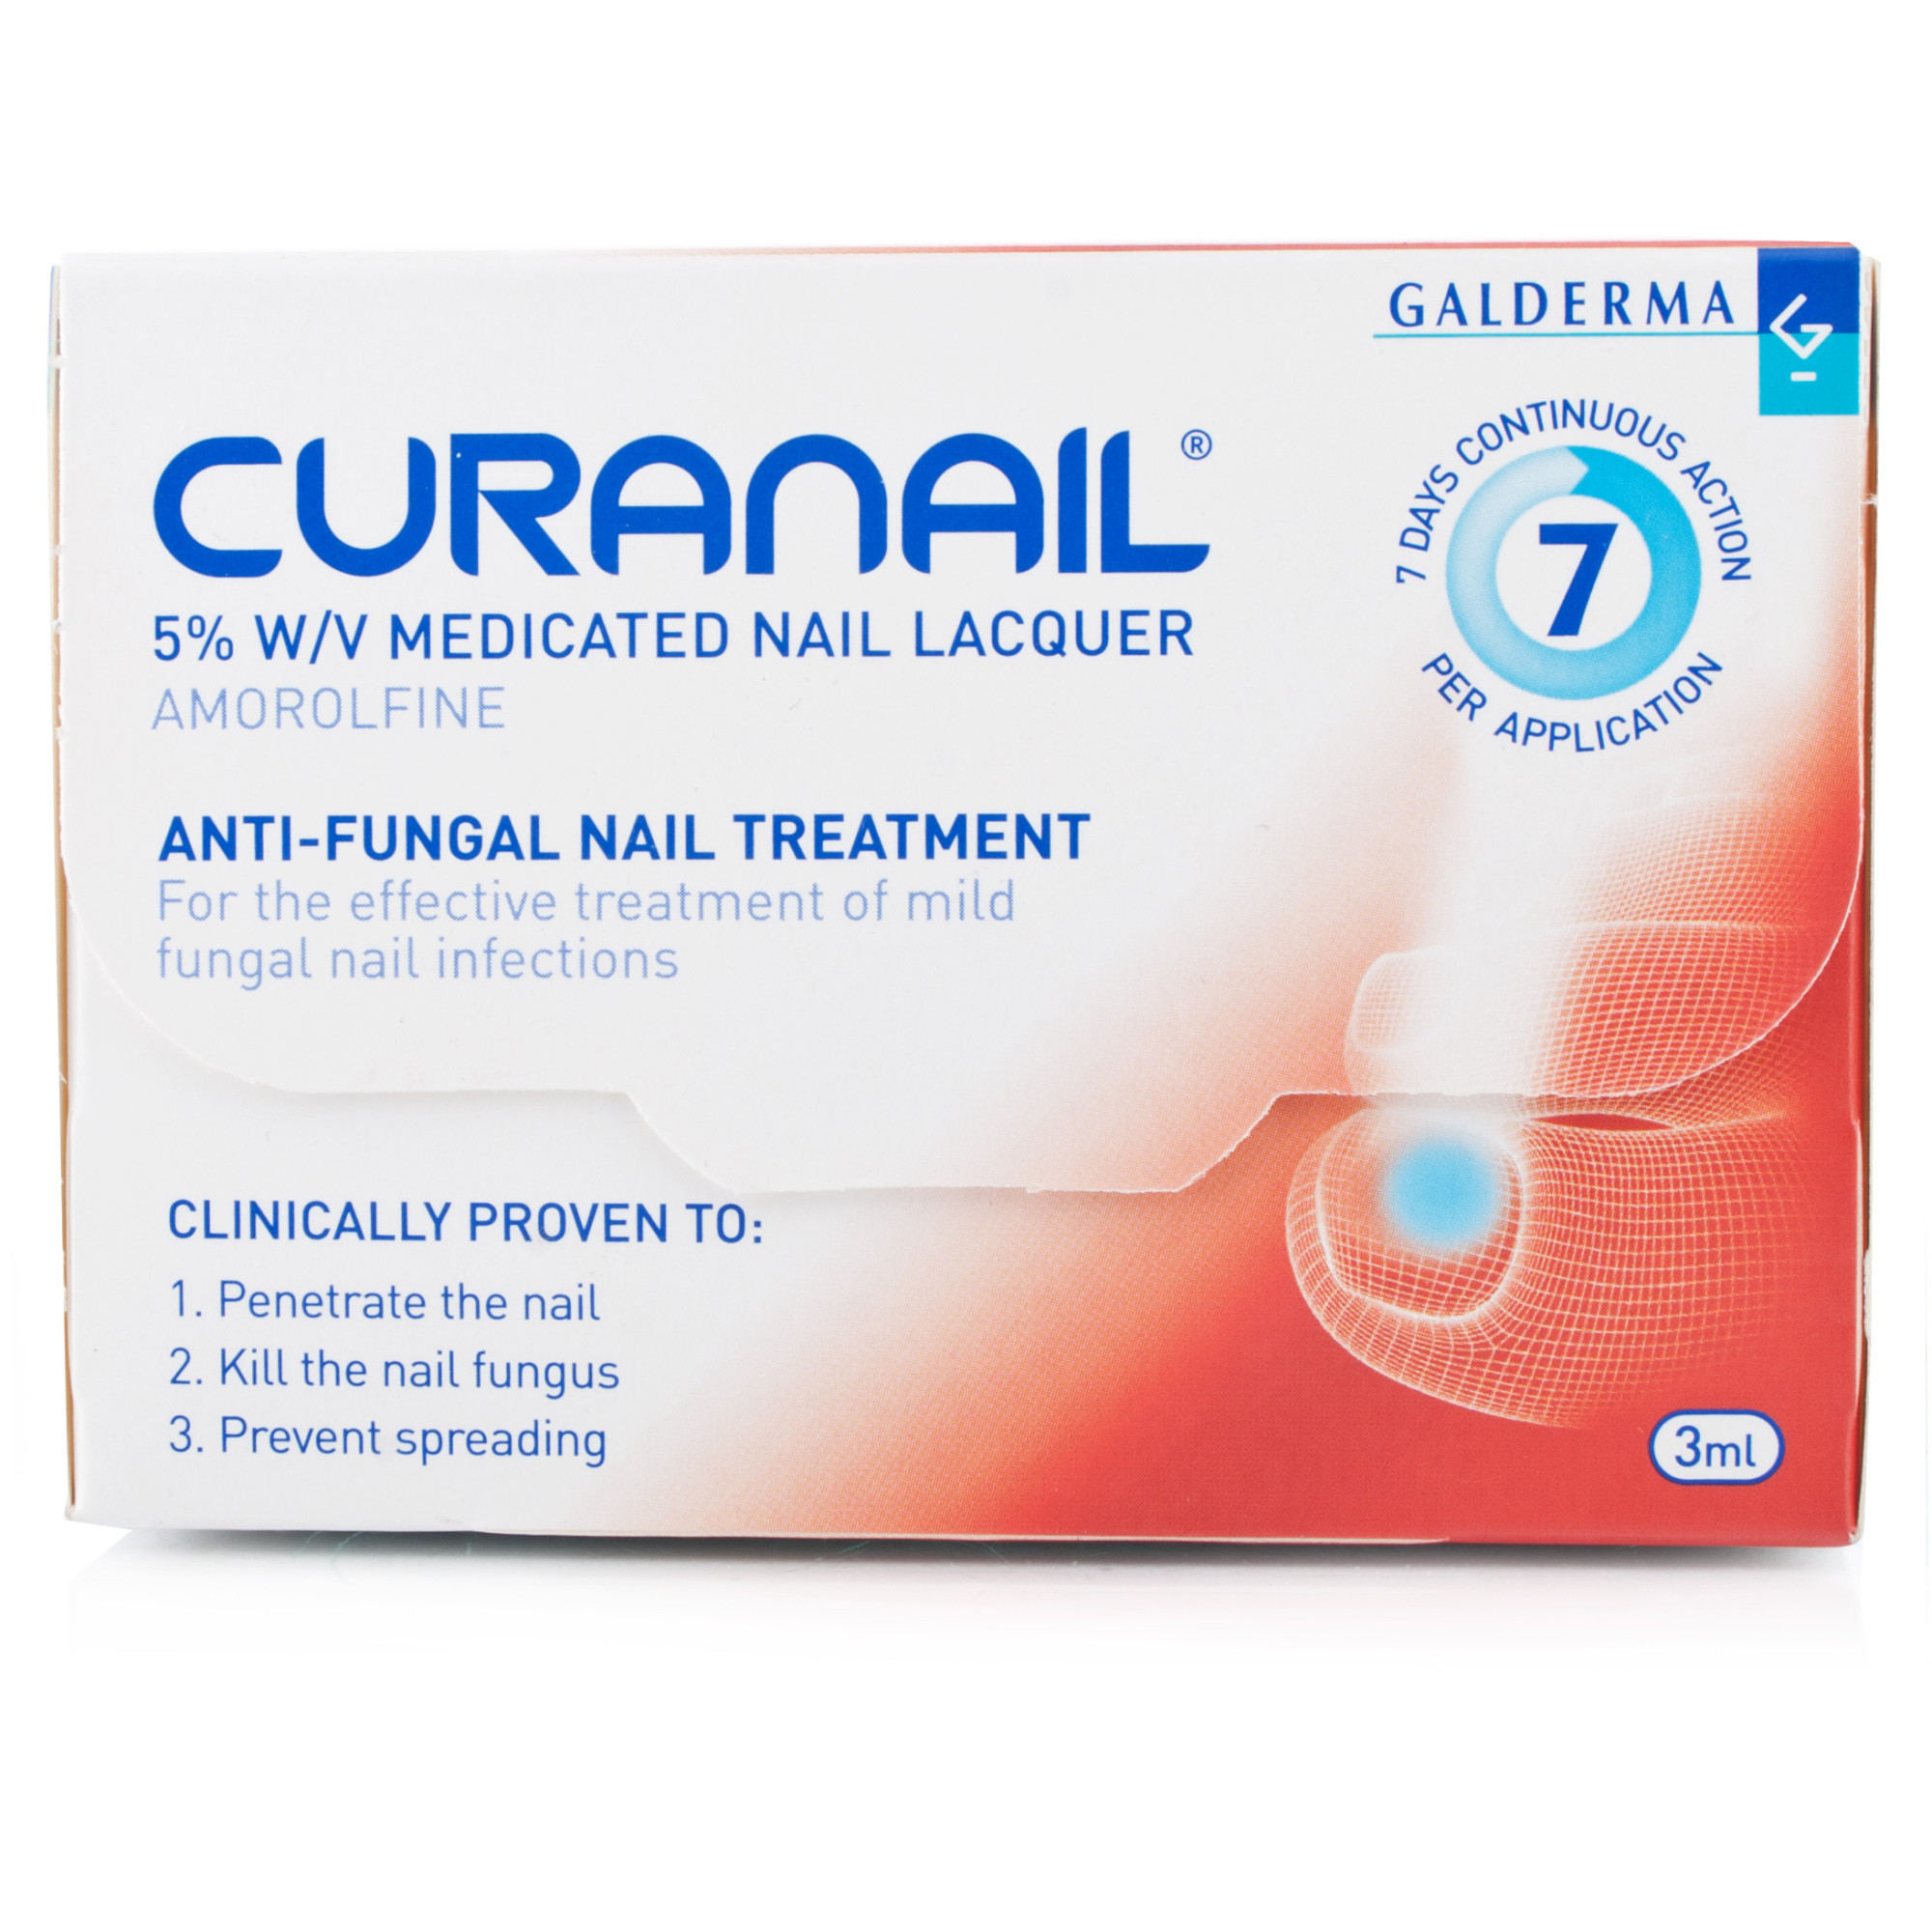 Curanail treatment